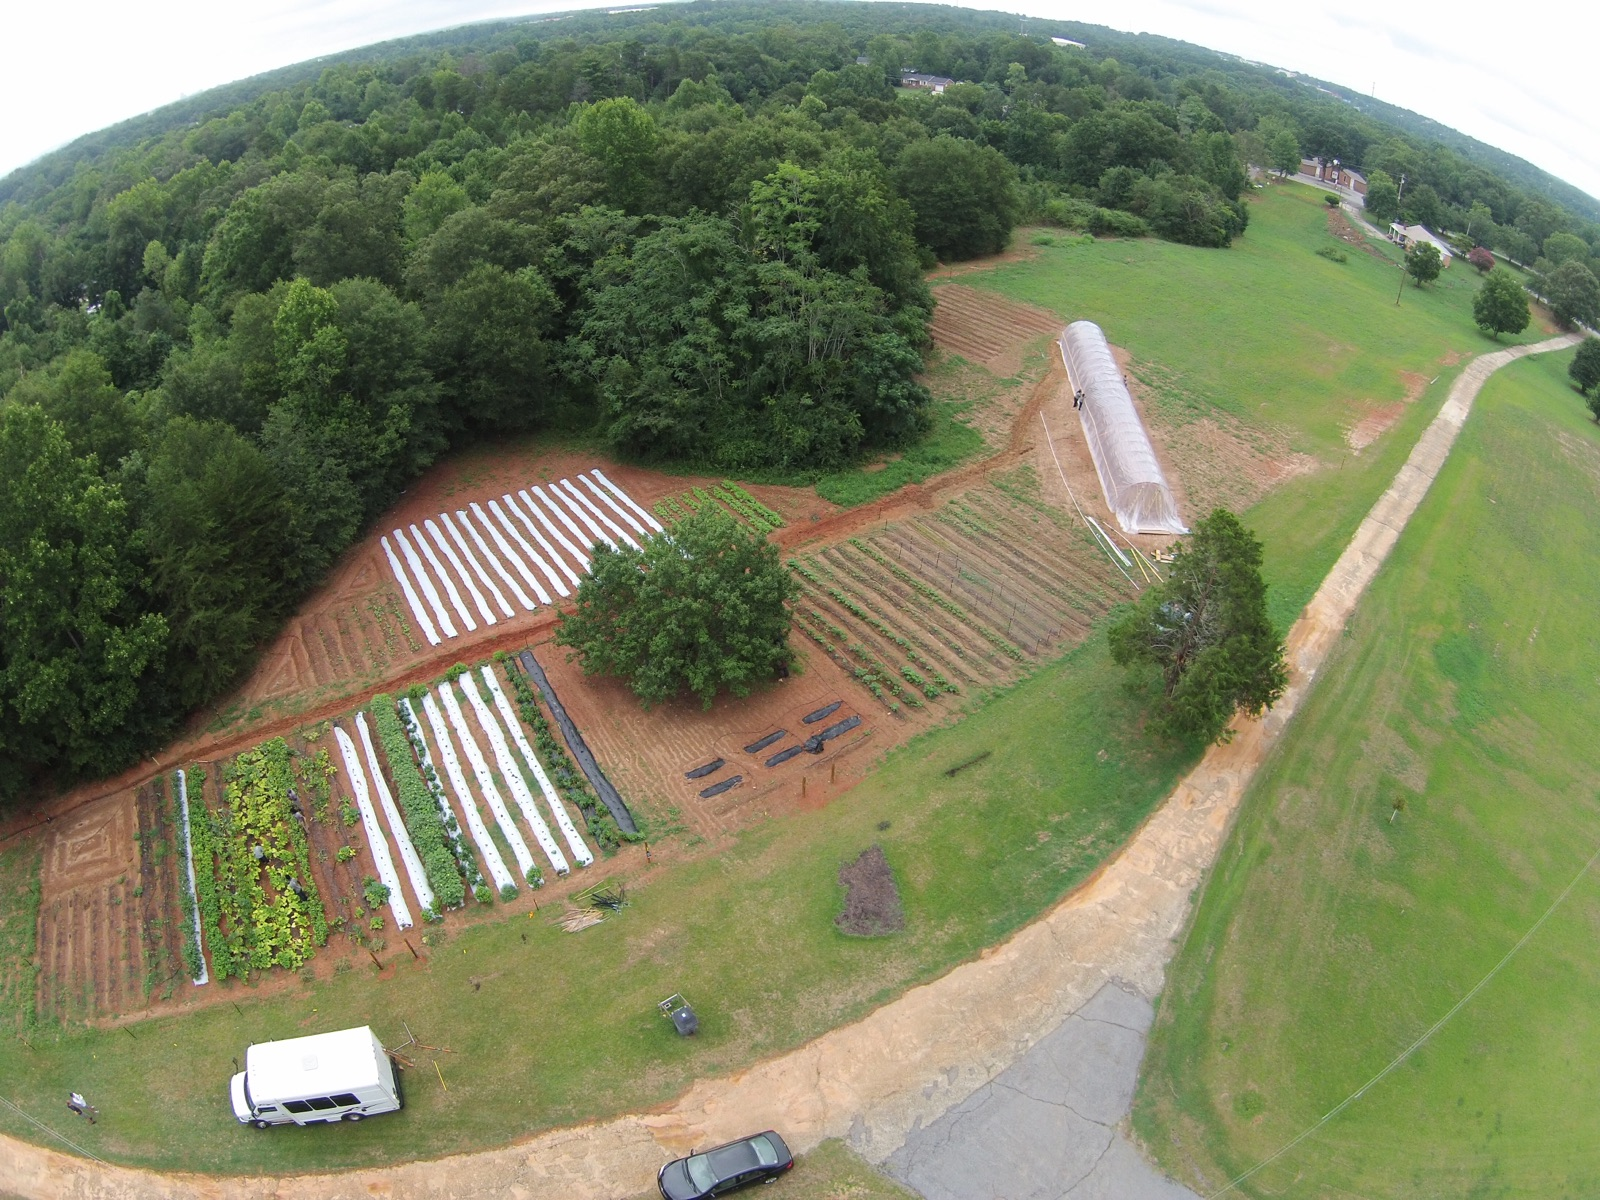 Minnie's Farm is located in the Staunton Bridge Community off White Horse Road of Greenville, South Carolina. Found right off the Staunton Bridge Road. This farm was built in May of 2016 with the help of many neighborhood partners. It is our largest farm to date.